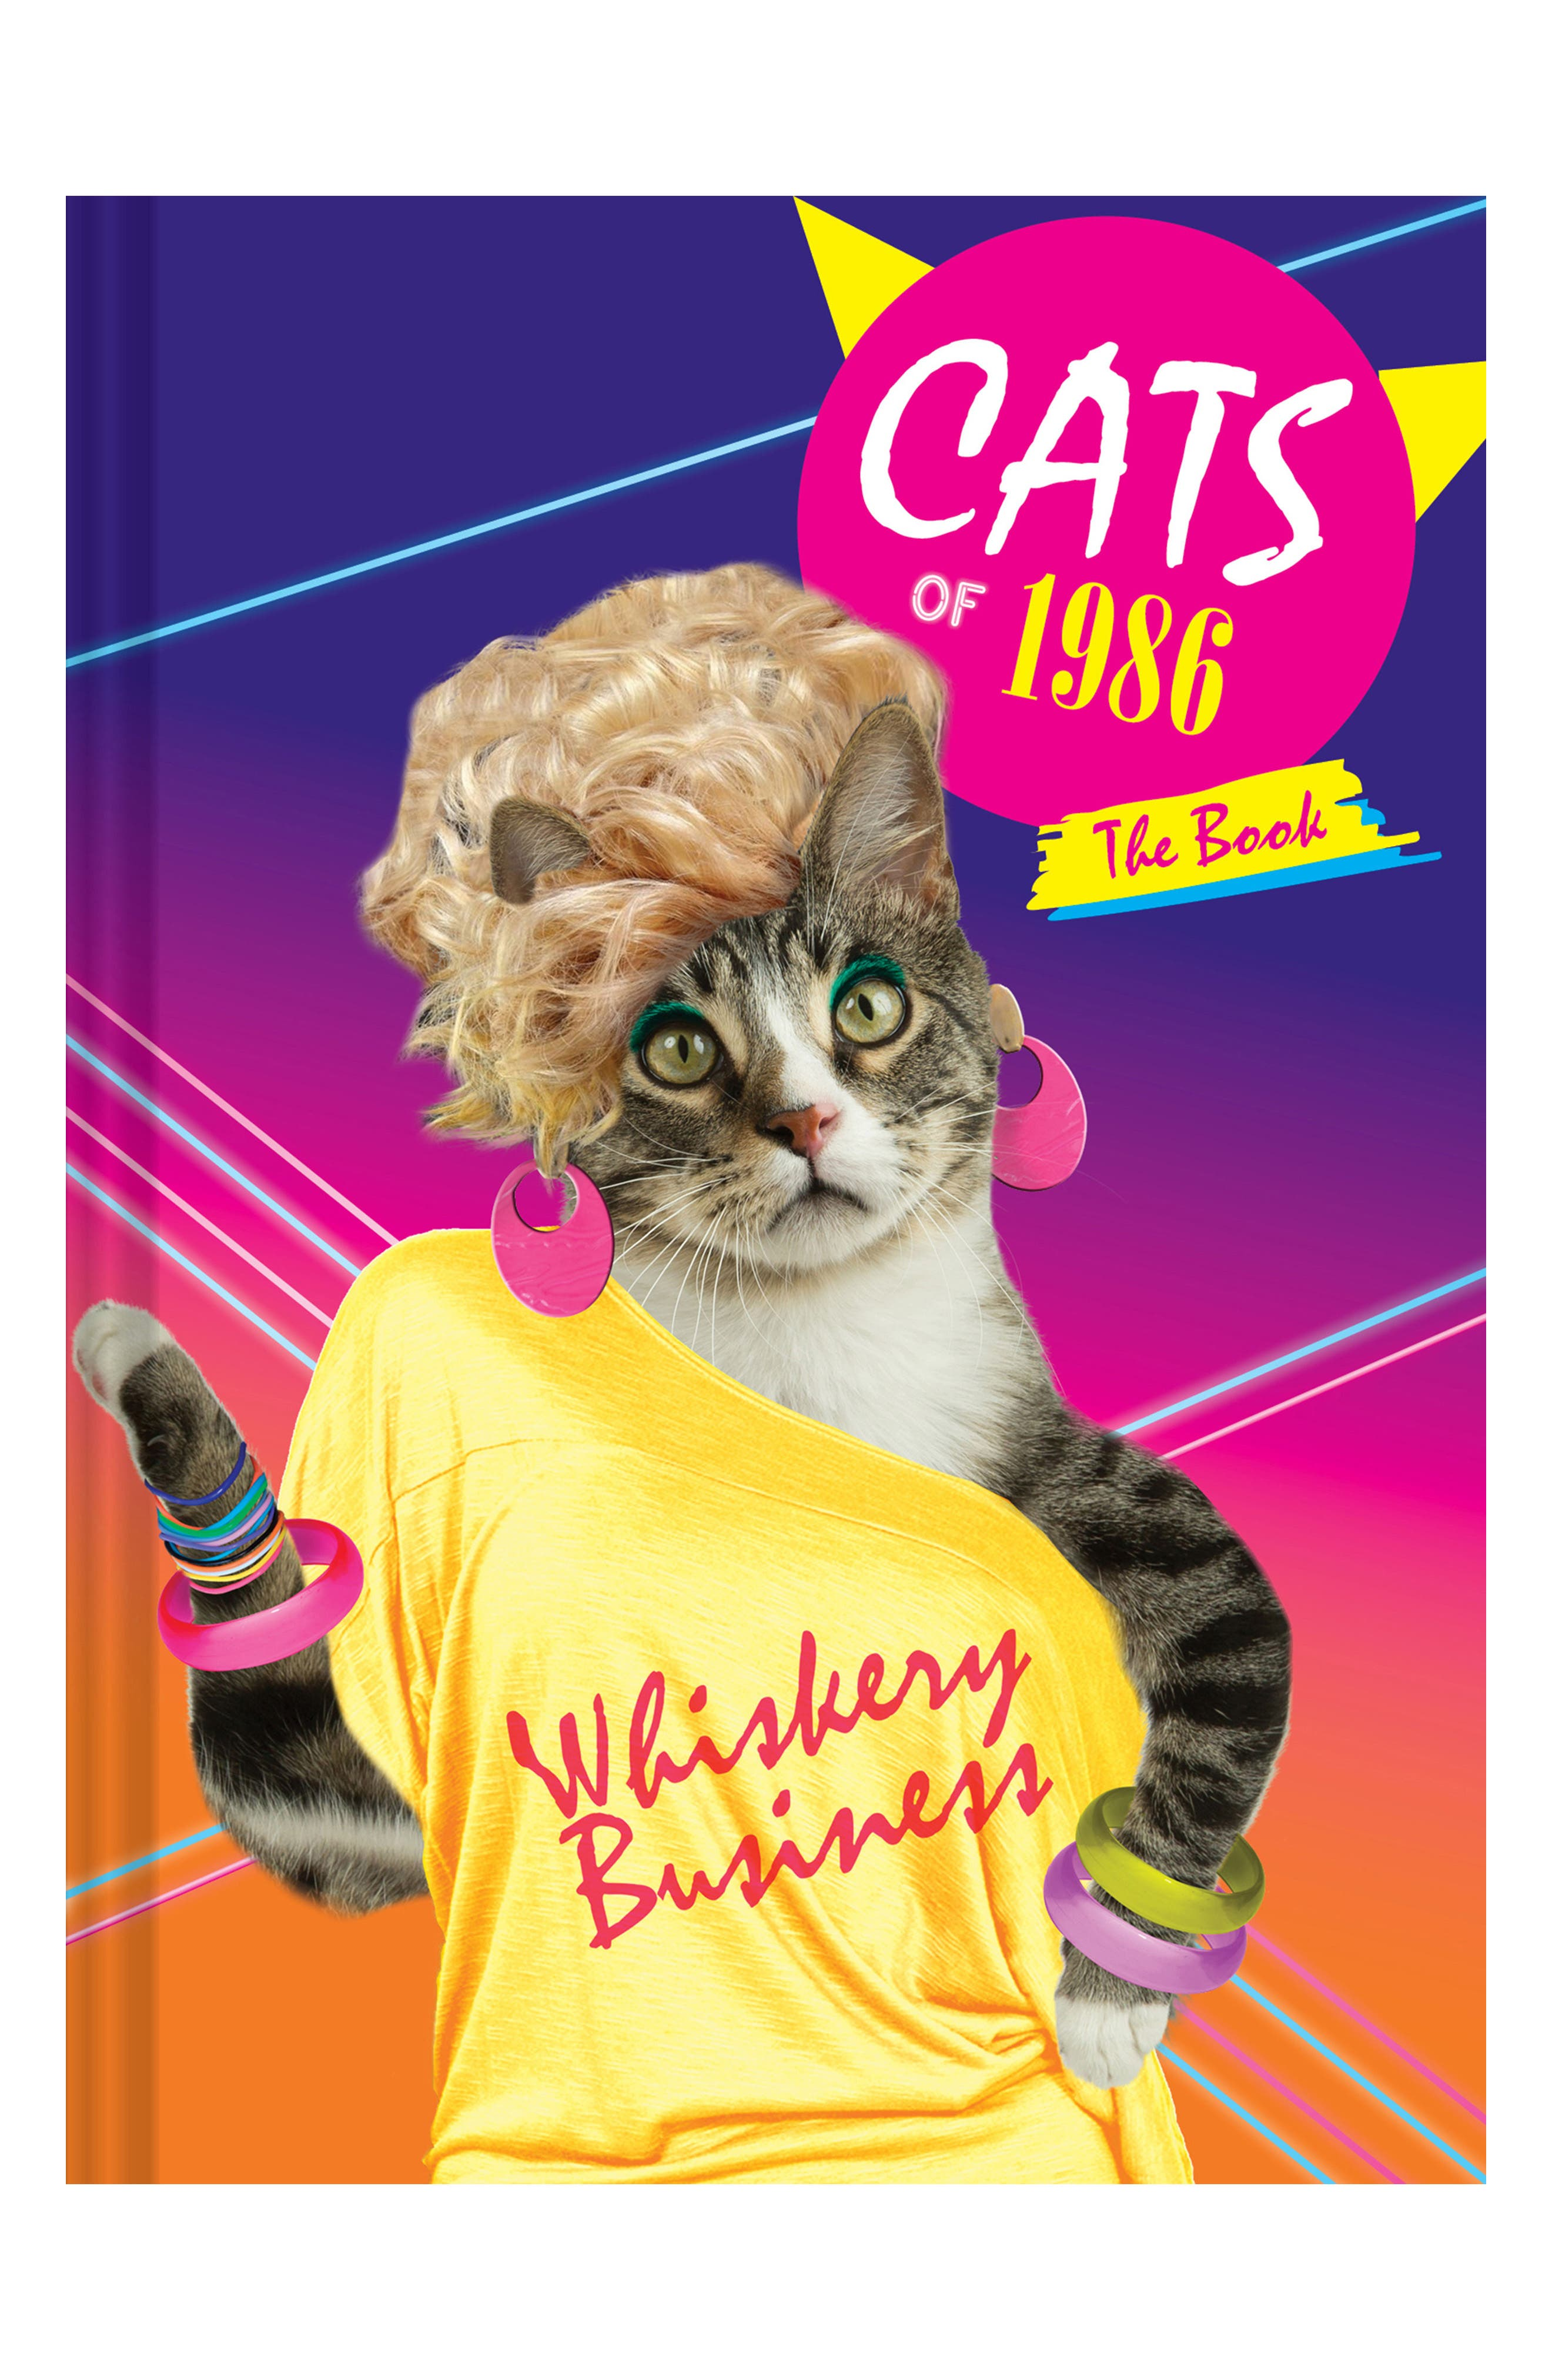 Cats of 1986: The Book